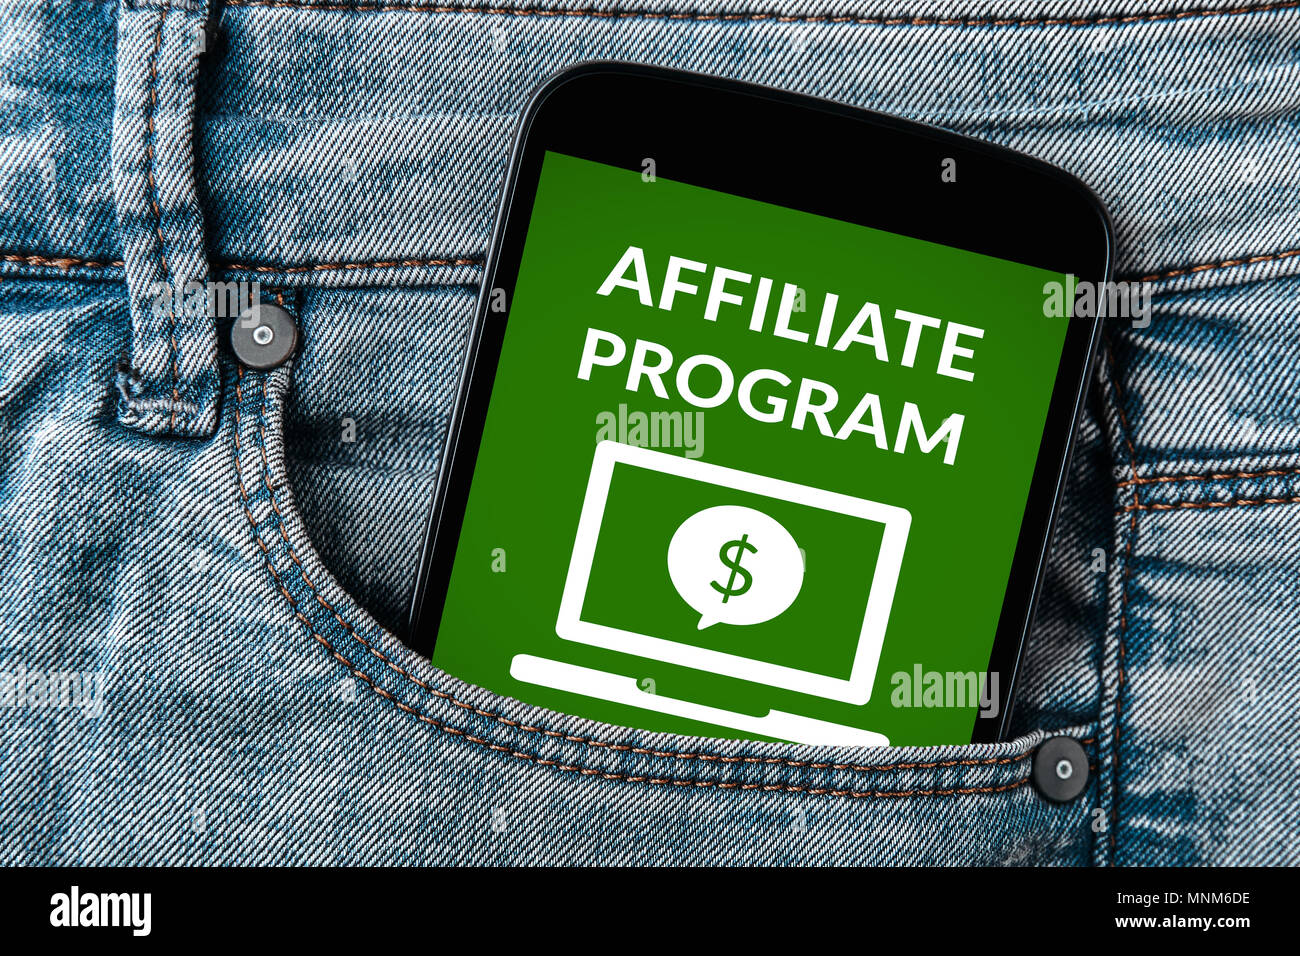 Affiliate program concept on smartphone screen in jeans pocket. All screen content is designed by me. Flat lay - Stock Image